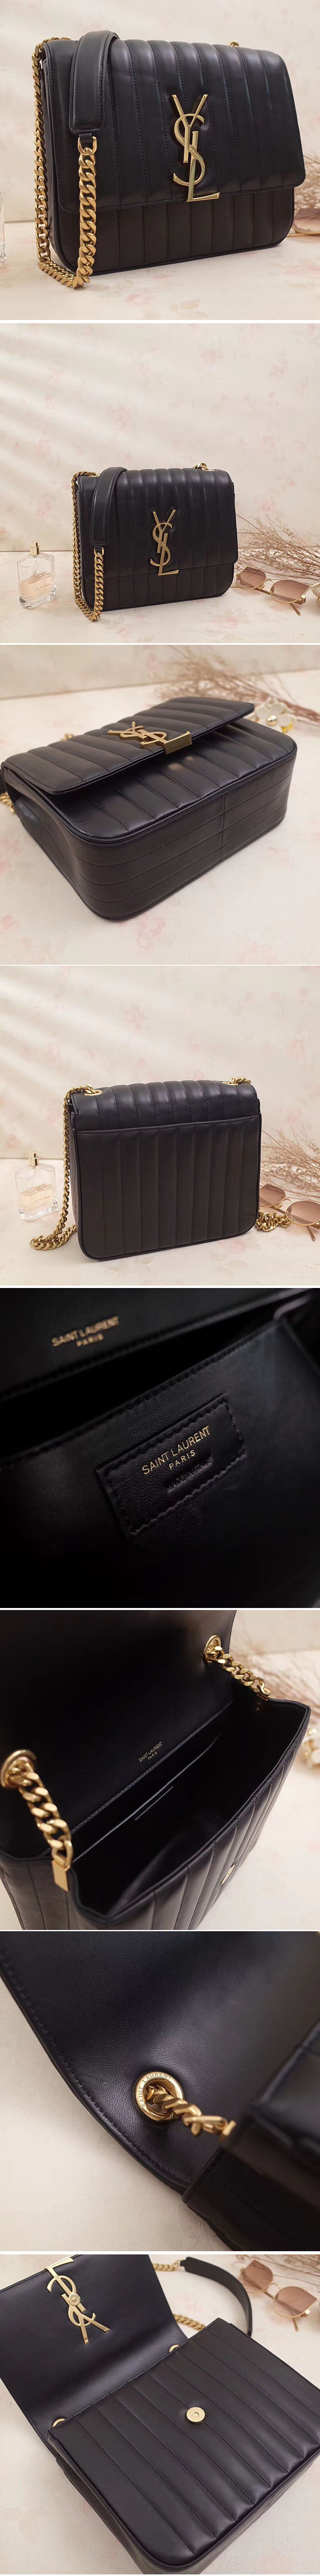 Replica Saint Laurent Large Vicky Bag in Original Leather 532595 Black